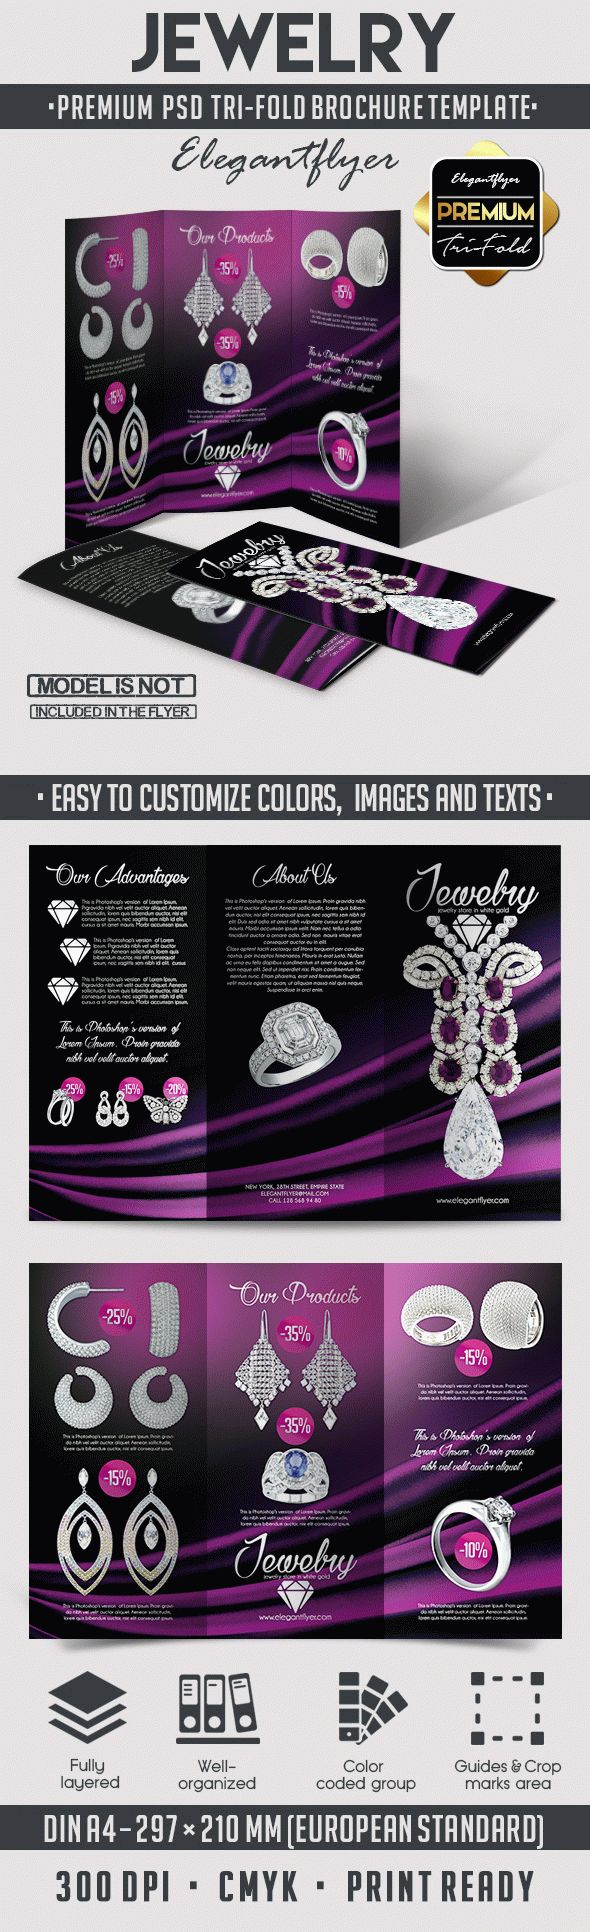 Jewelry – Tri-Fold Brochure  PSD Template